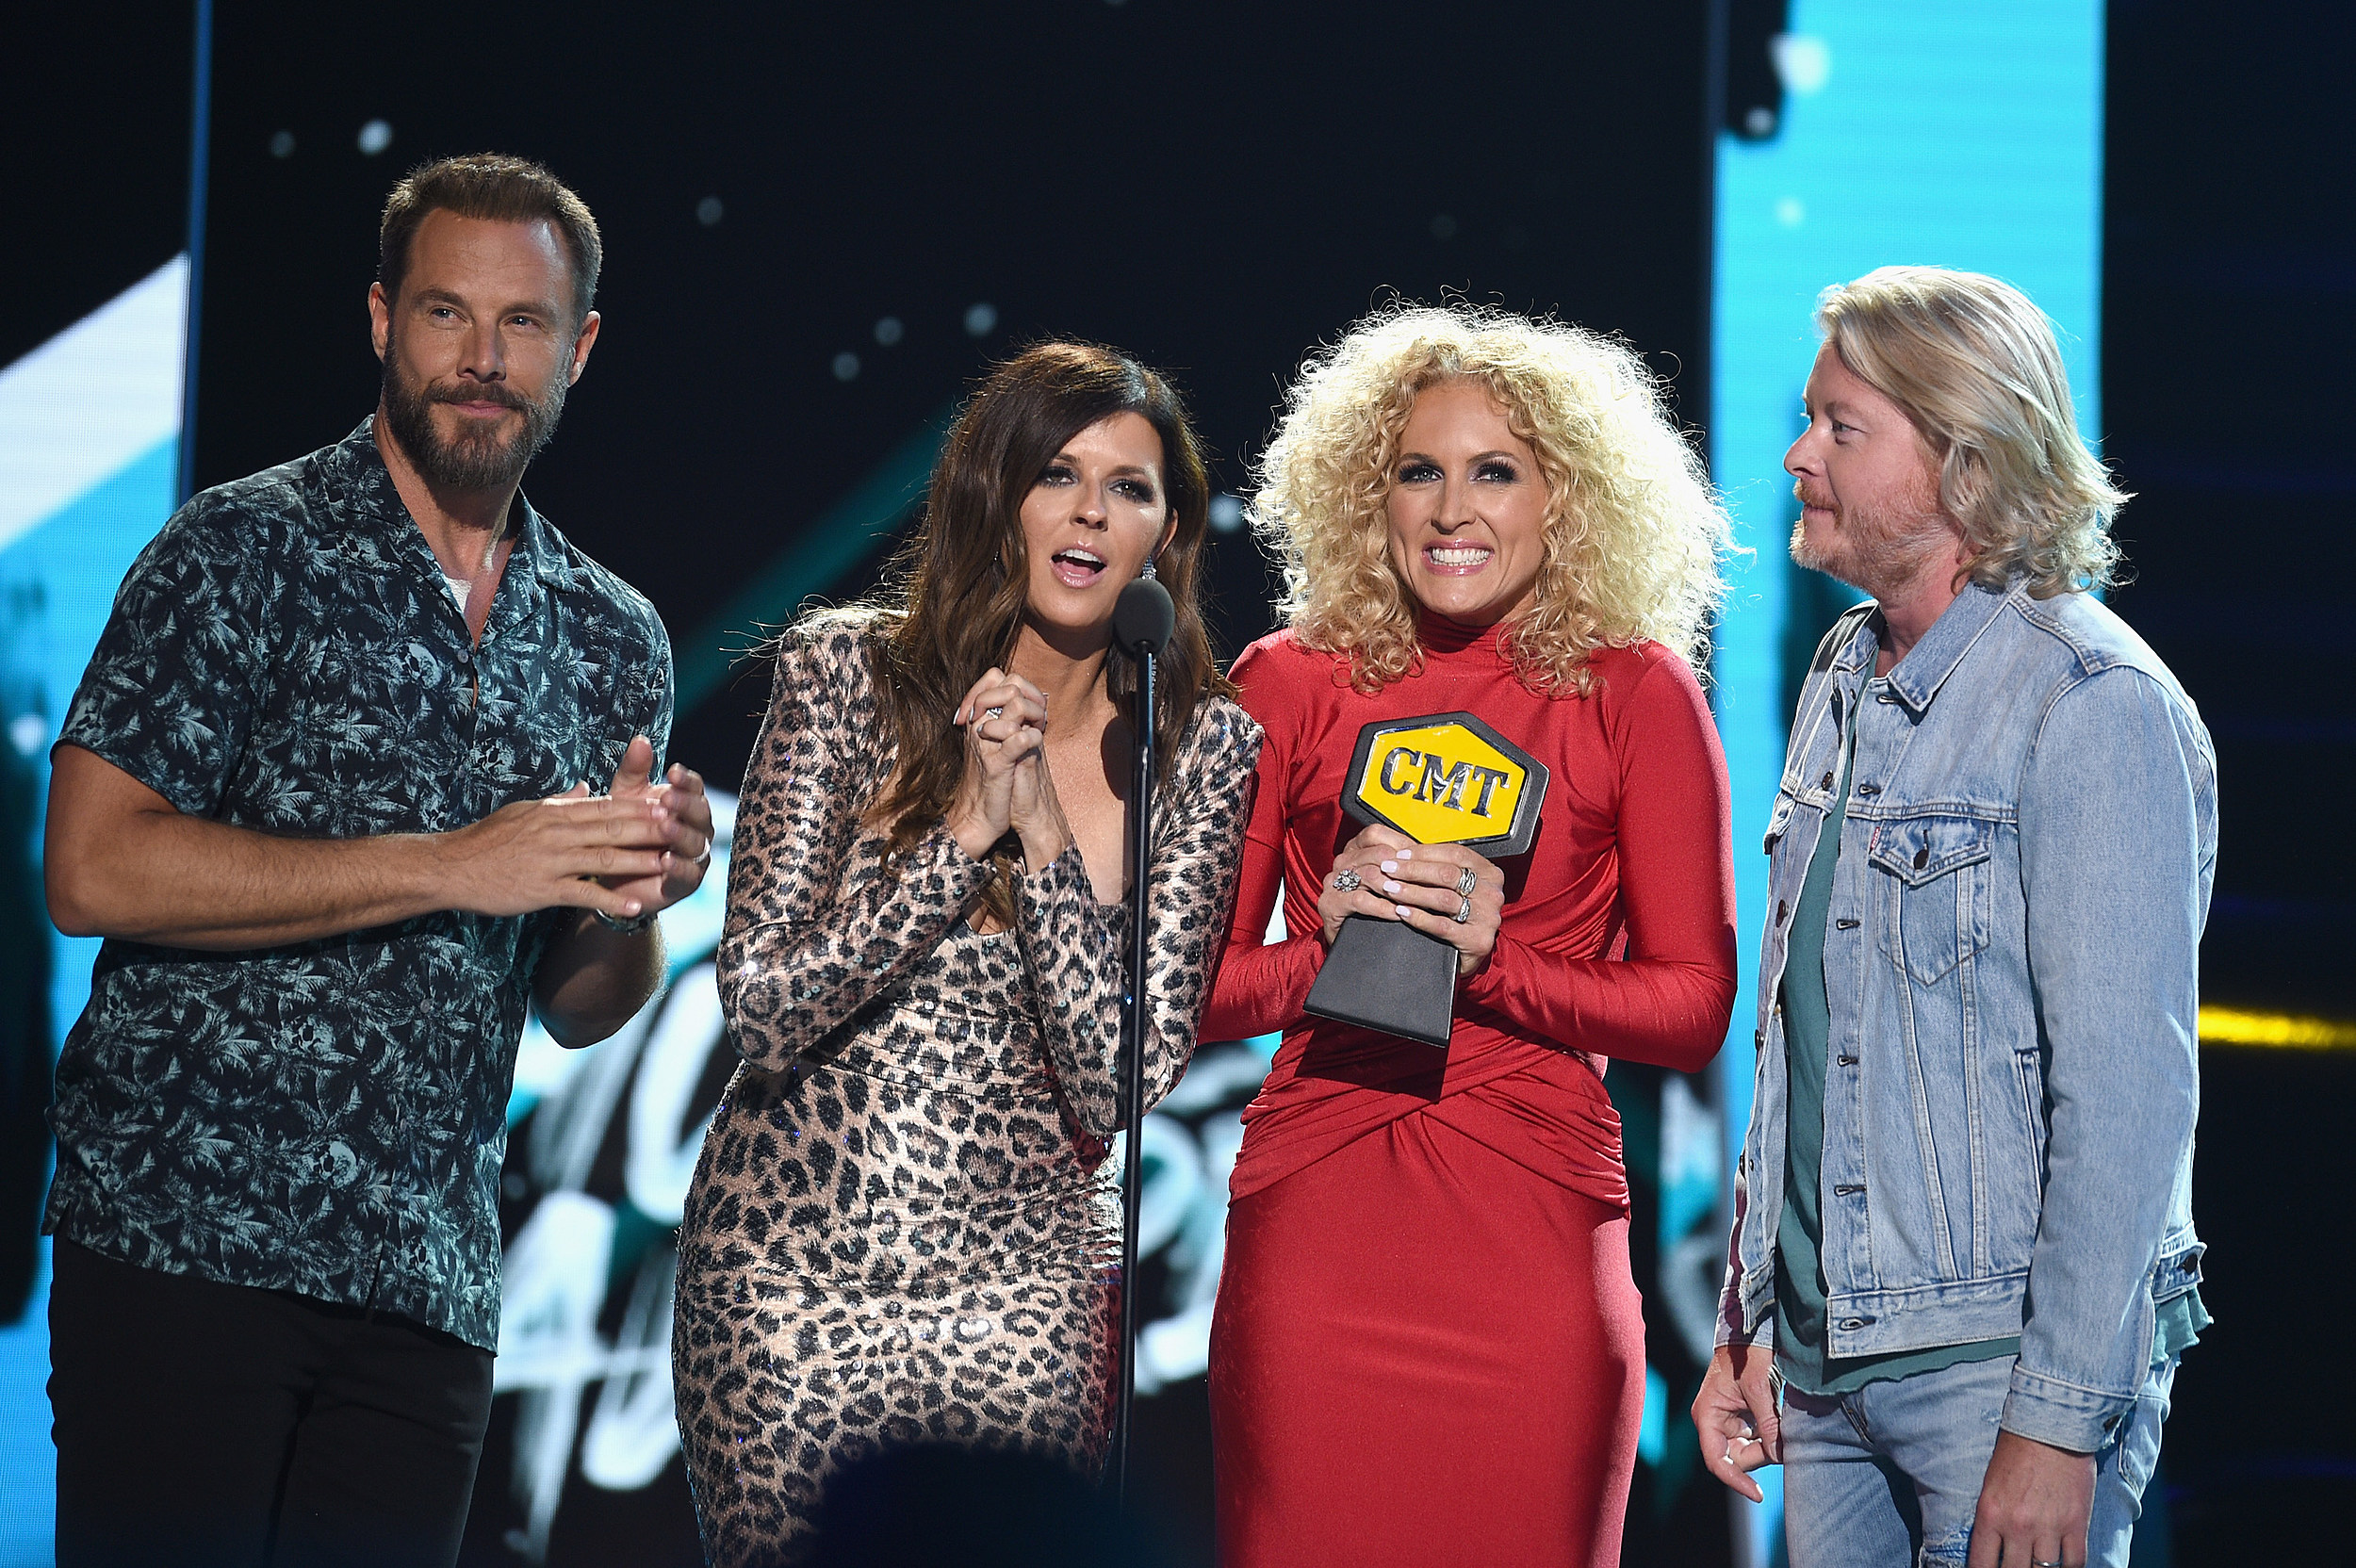 Everything You Need To Know About The 2019 Cmt Music Awards